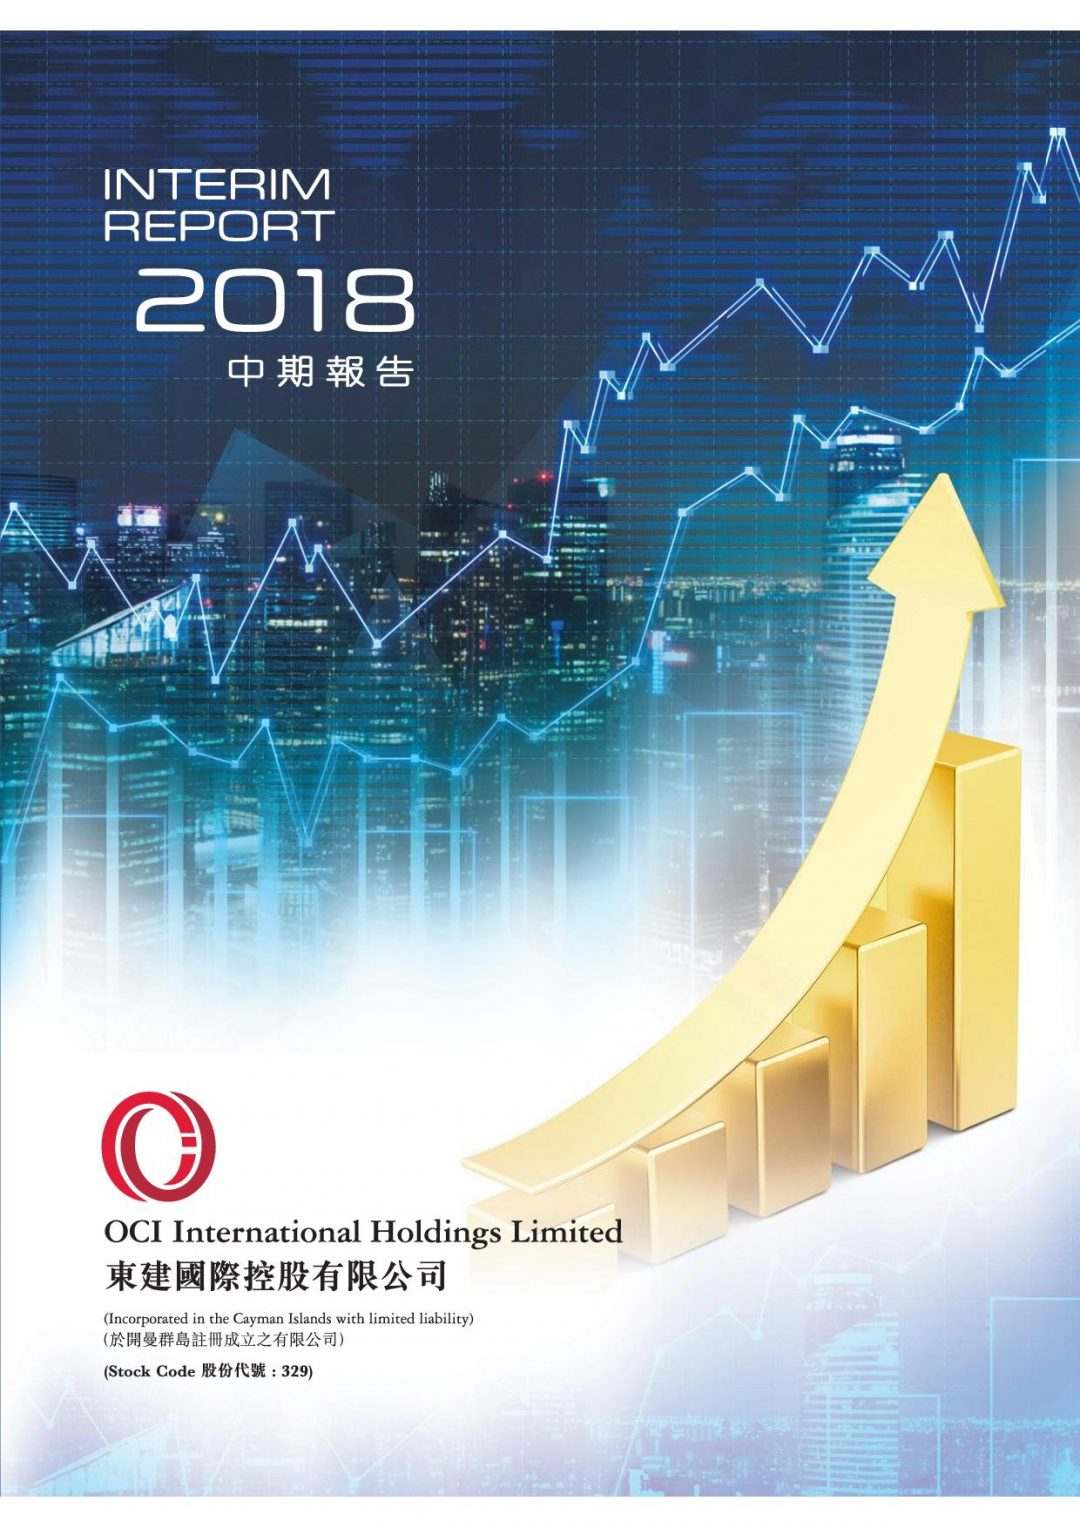 OCI International Holdings Limited